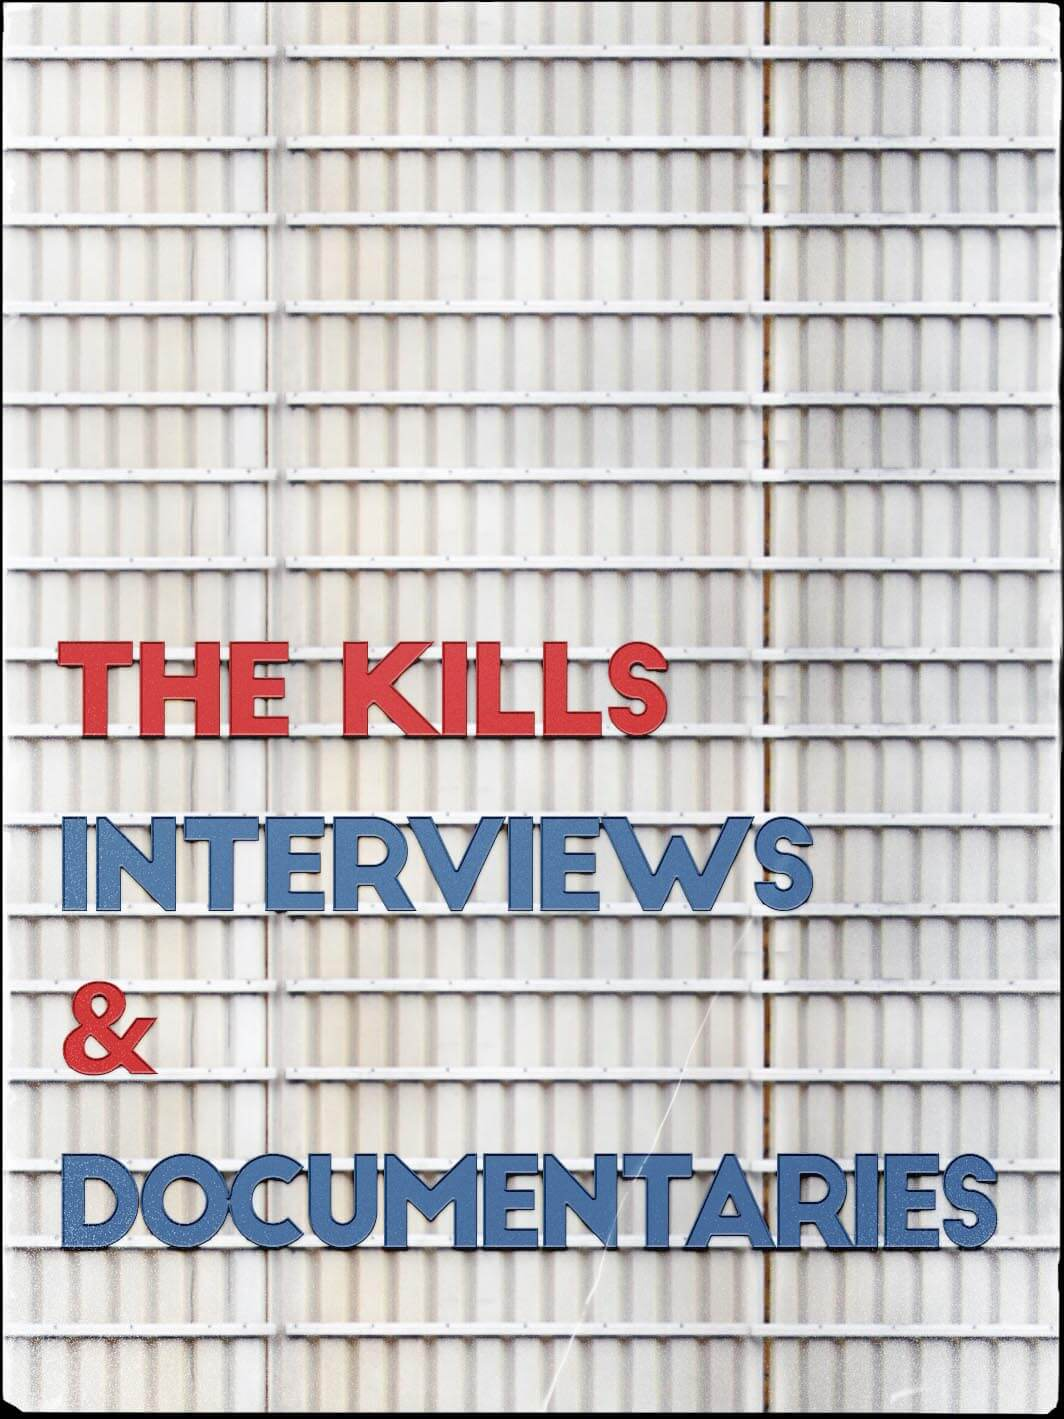 Interviews & Documentaries